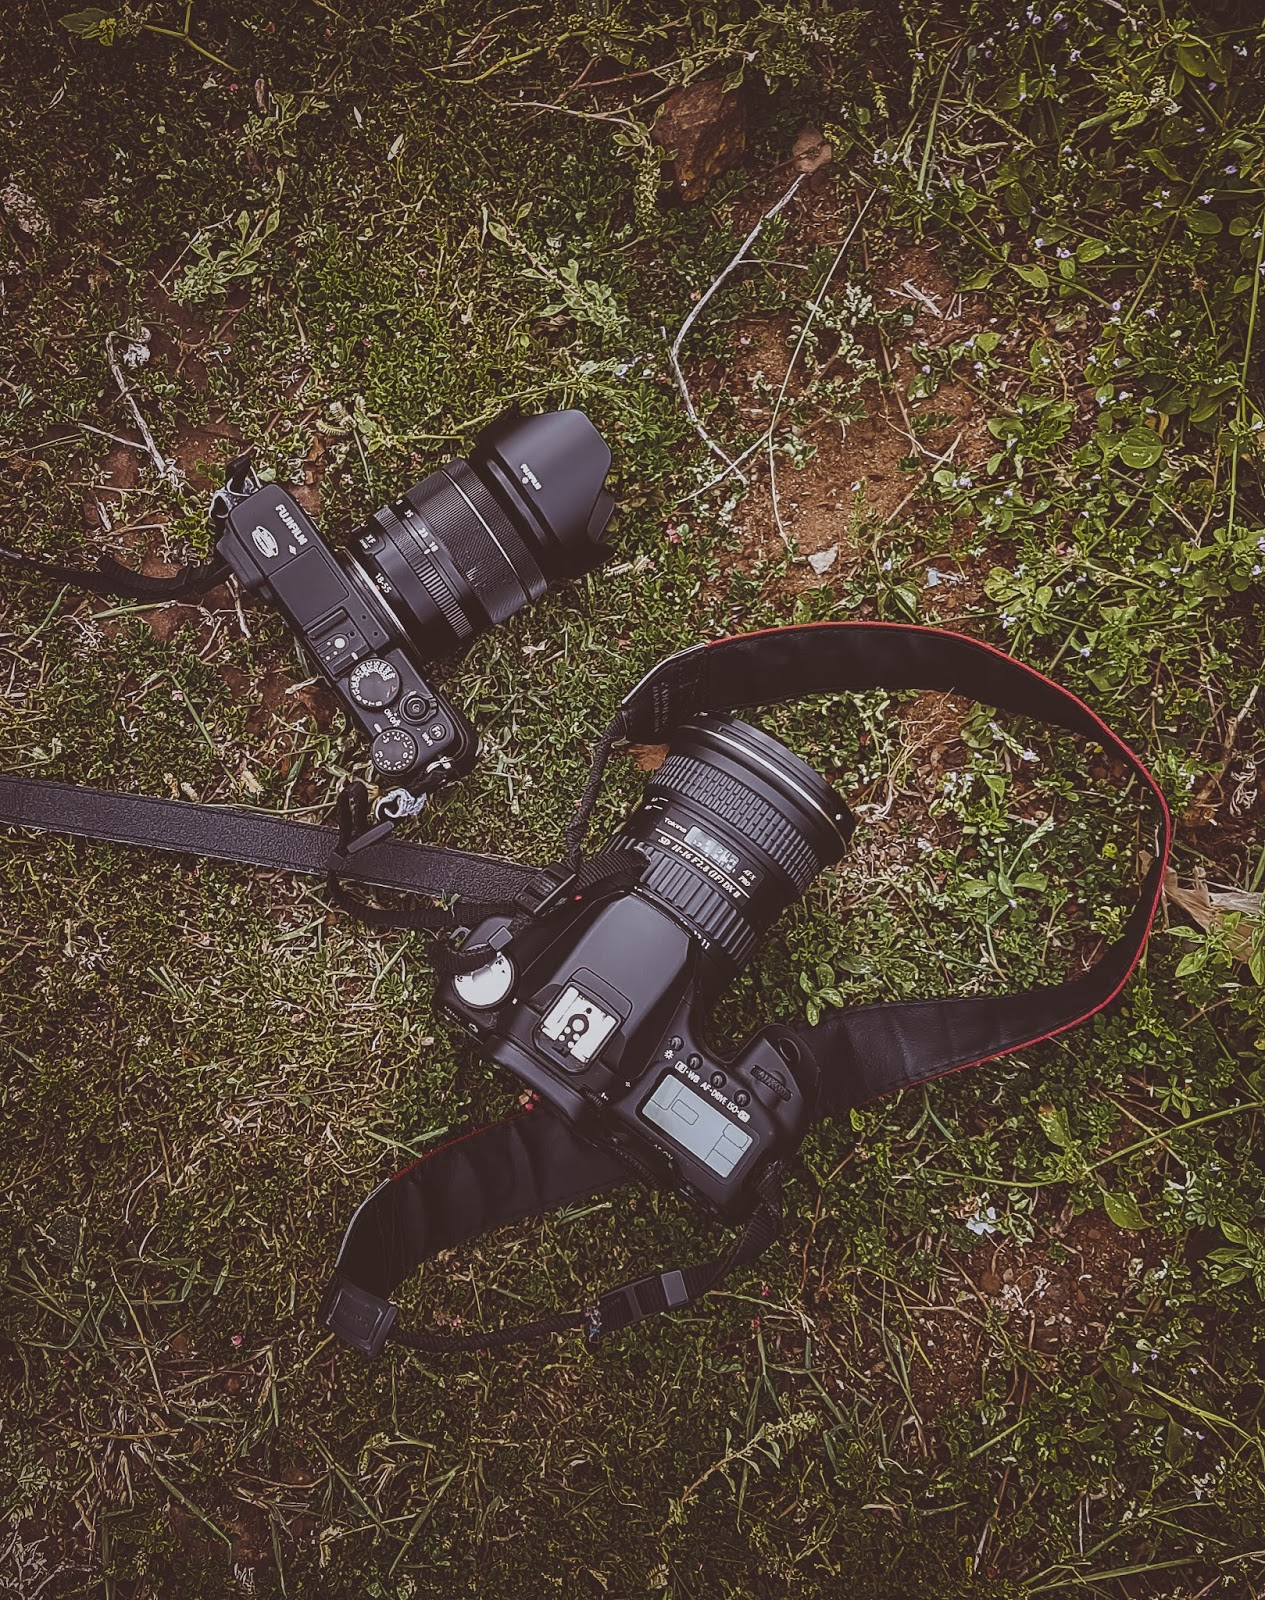 My Gear - Fuji XE-2 & Canon 50D + Tokina 11-16 mm F2.8 Ultra Wide Lens